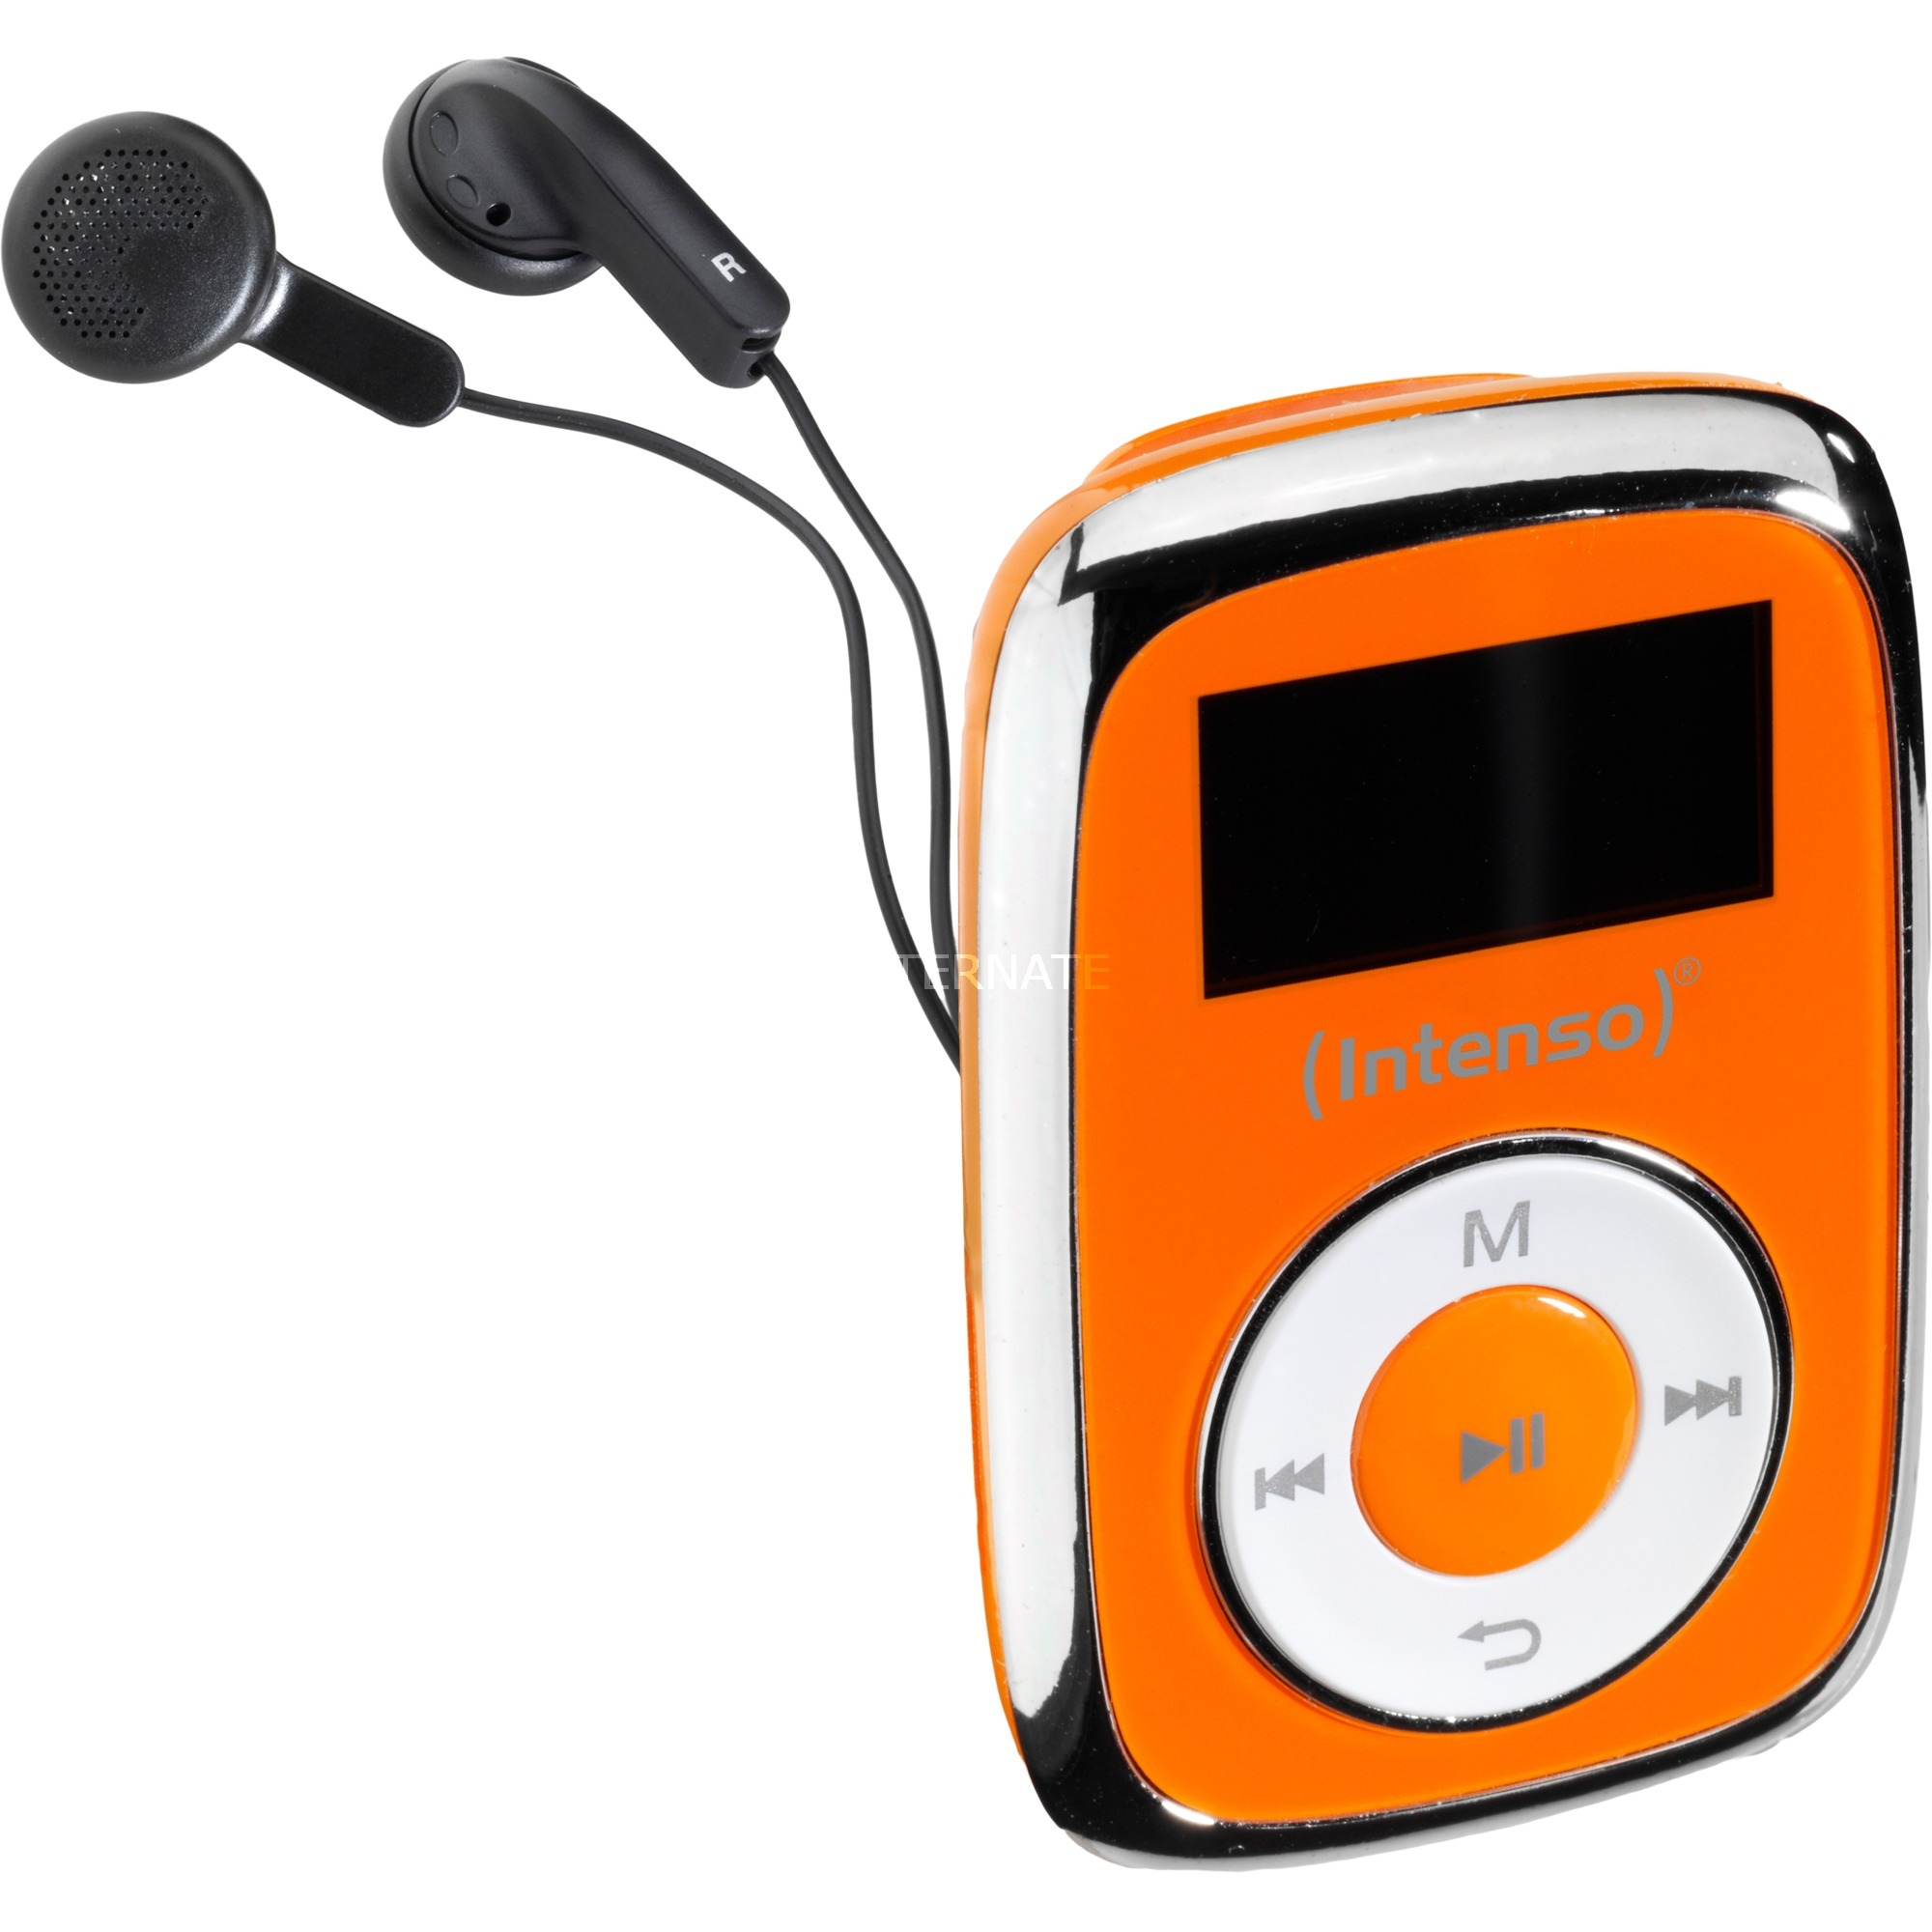 Music Mover Reproductor de MP3 Naranja 8 GB, Reproductor mp3